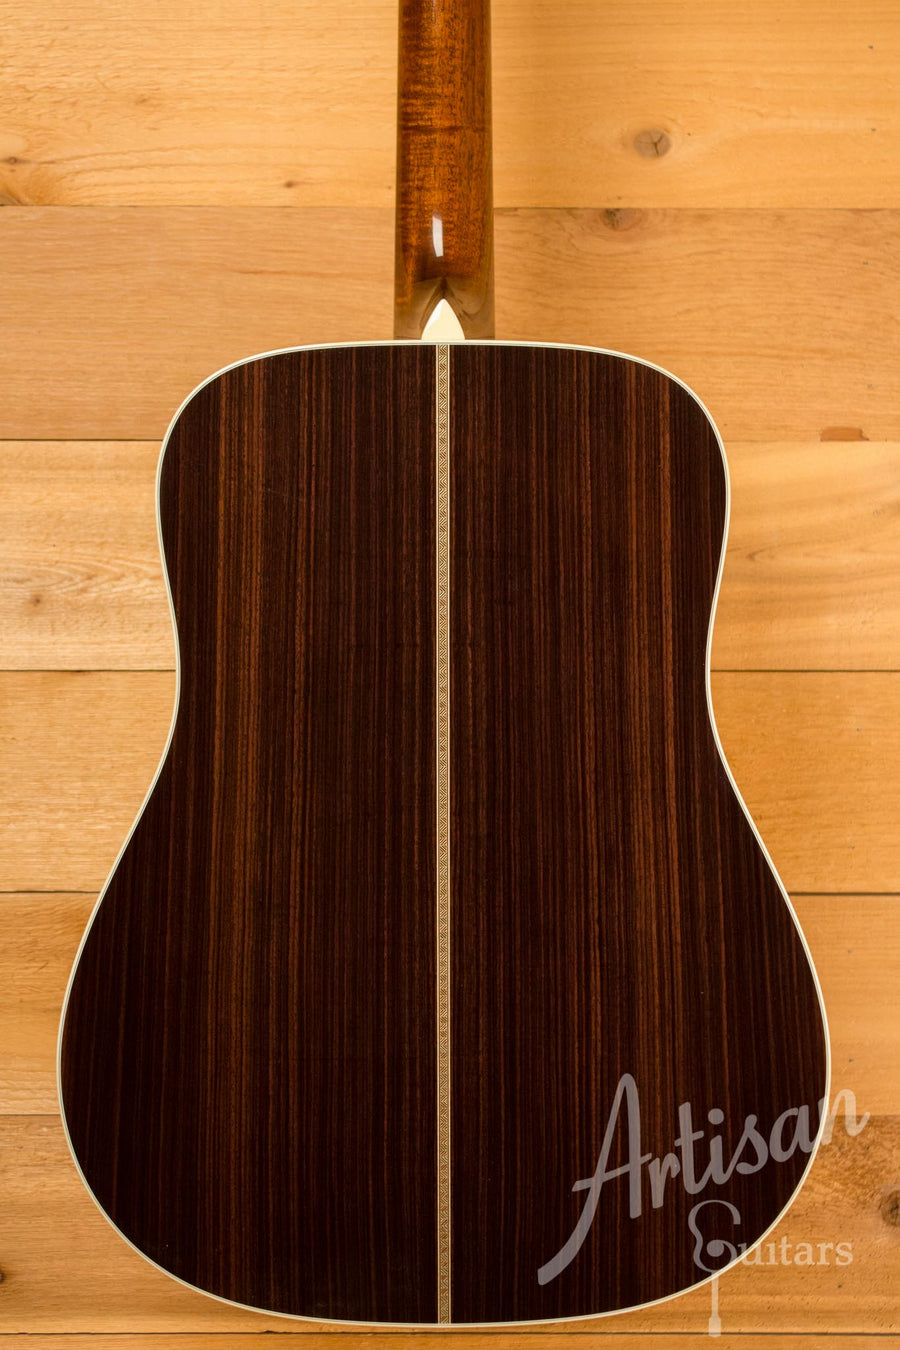 Collings D2HA Guitar Torrefied Adirondack Spruce and Indian Rosewood No Tongue Brace and Adirondack Bracing ID-10593